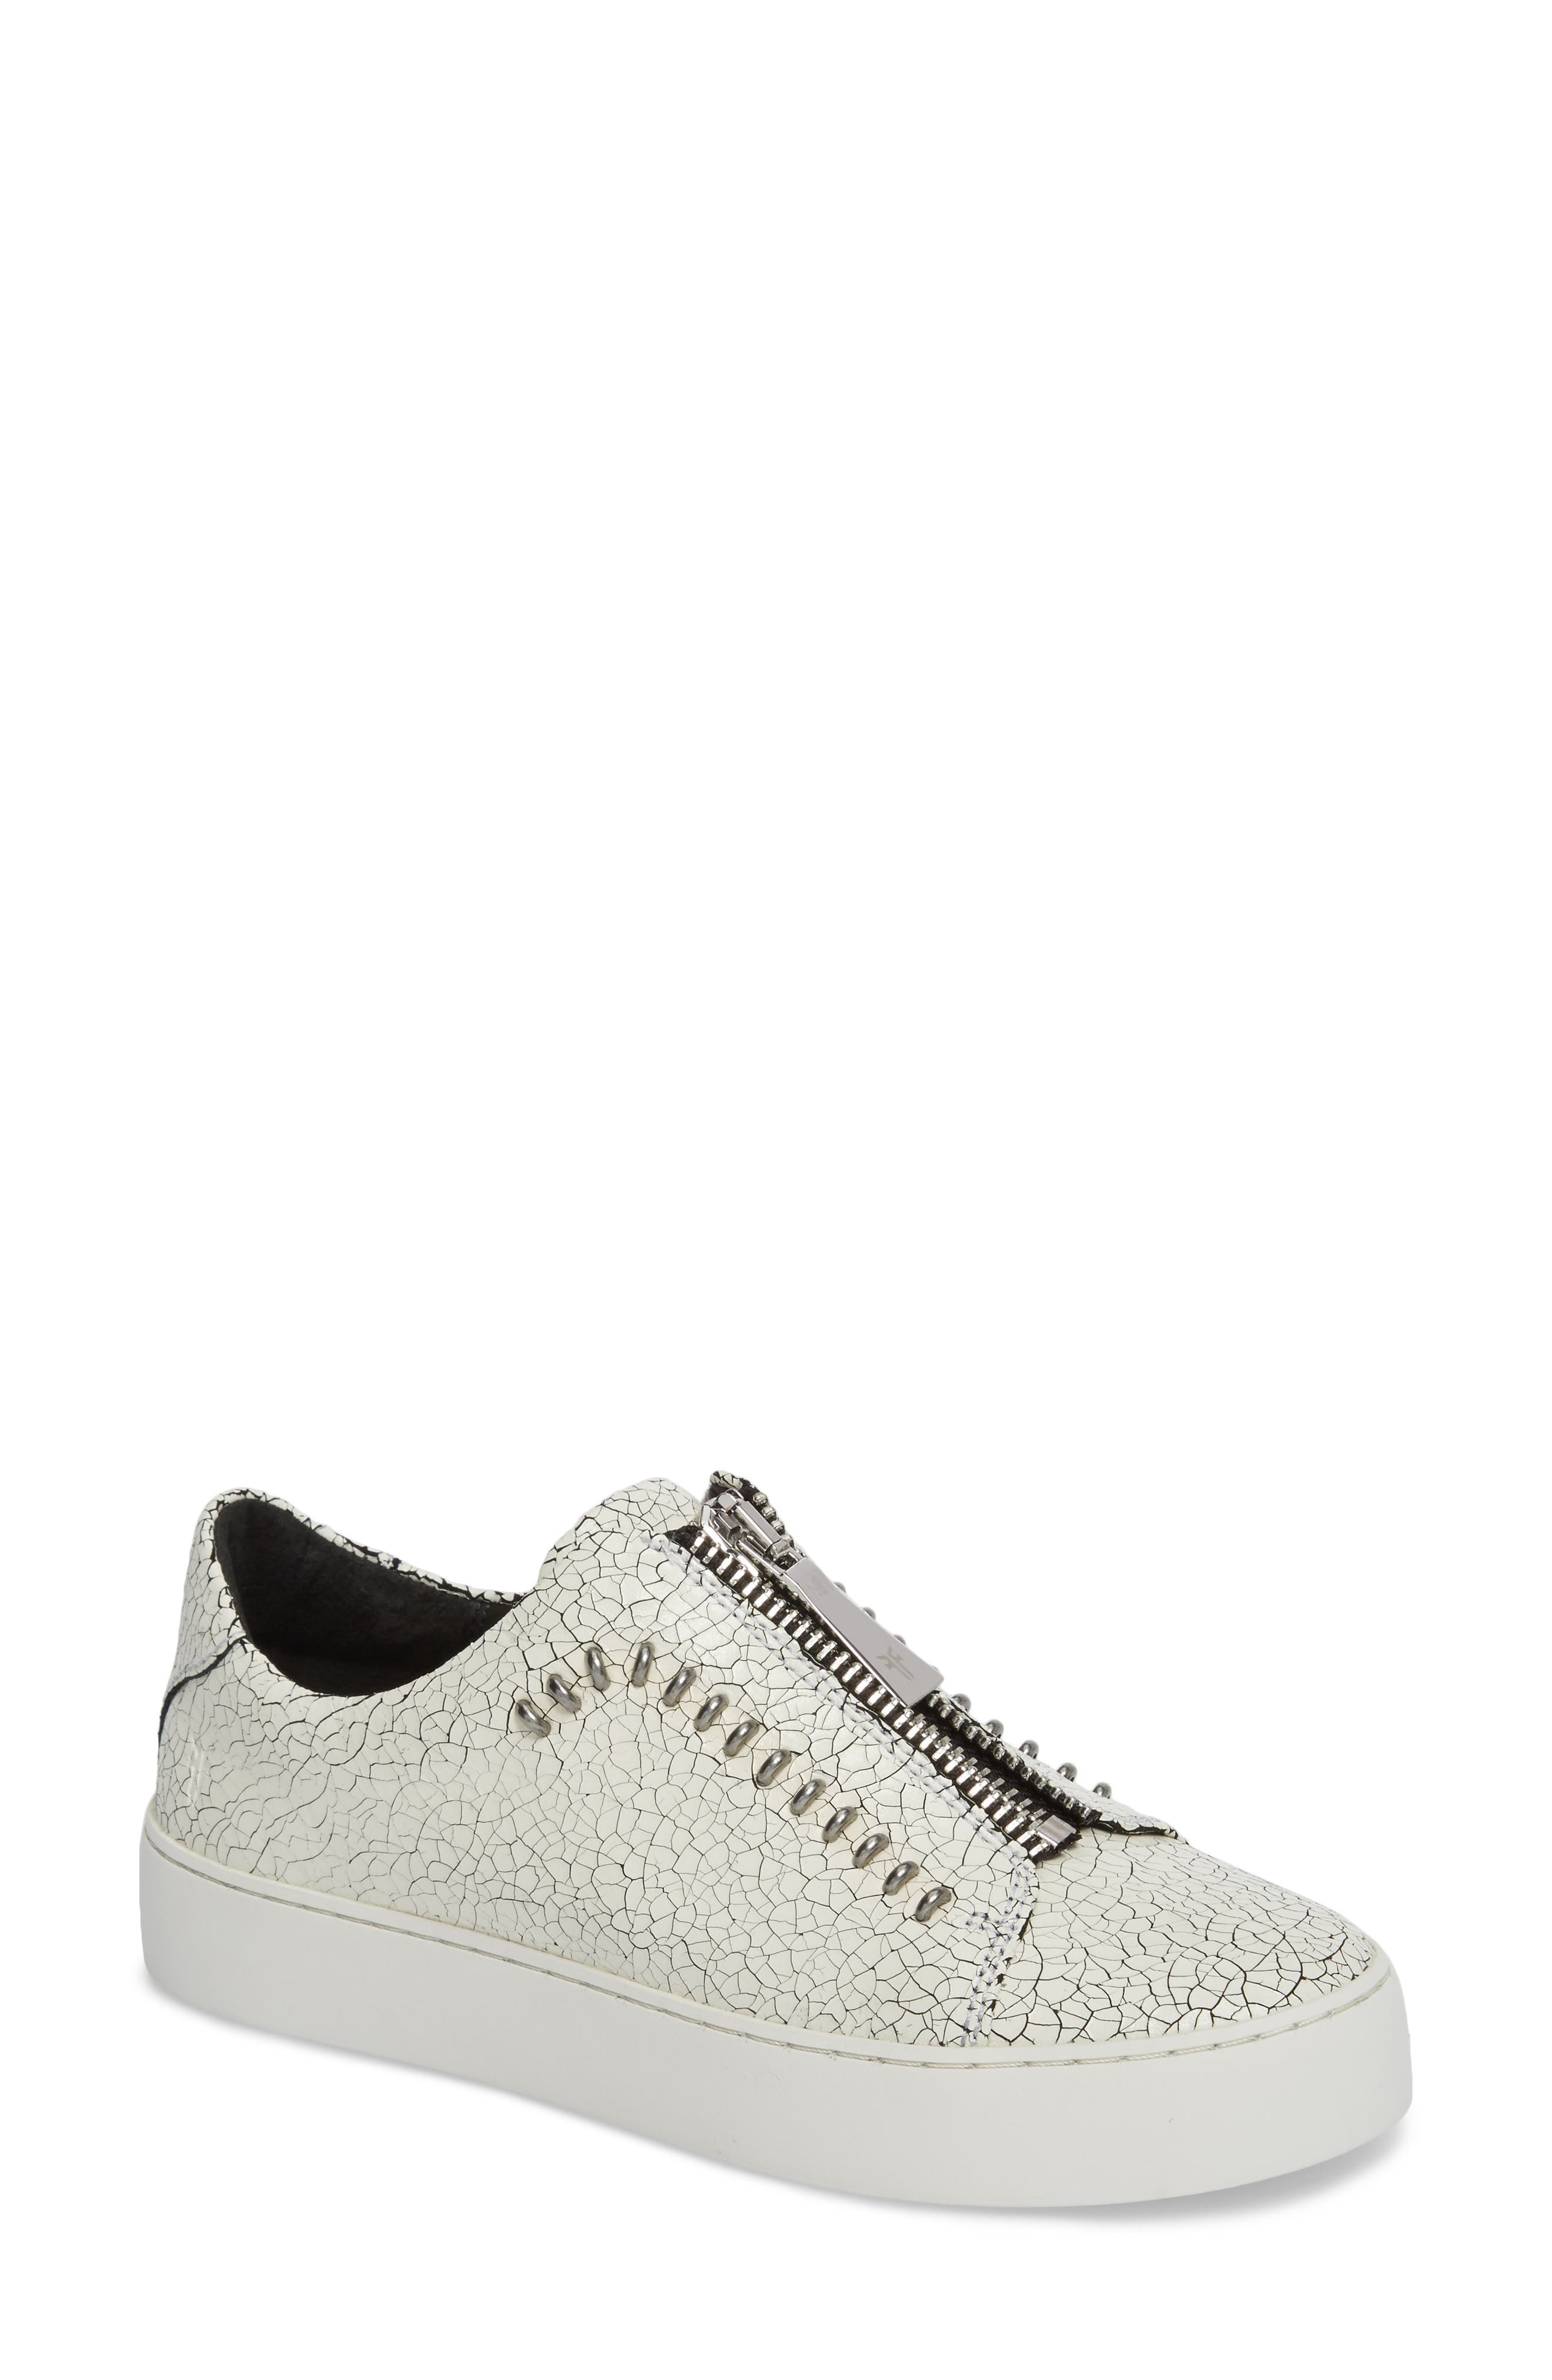 Lena Rebel Zip Sneaker,                             Main thumbnail 1, color,                             WHITE LEATHER